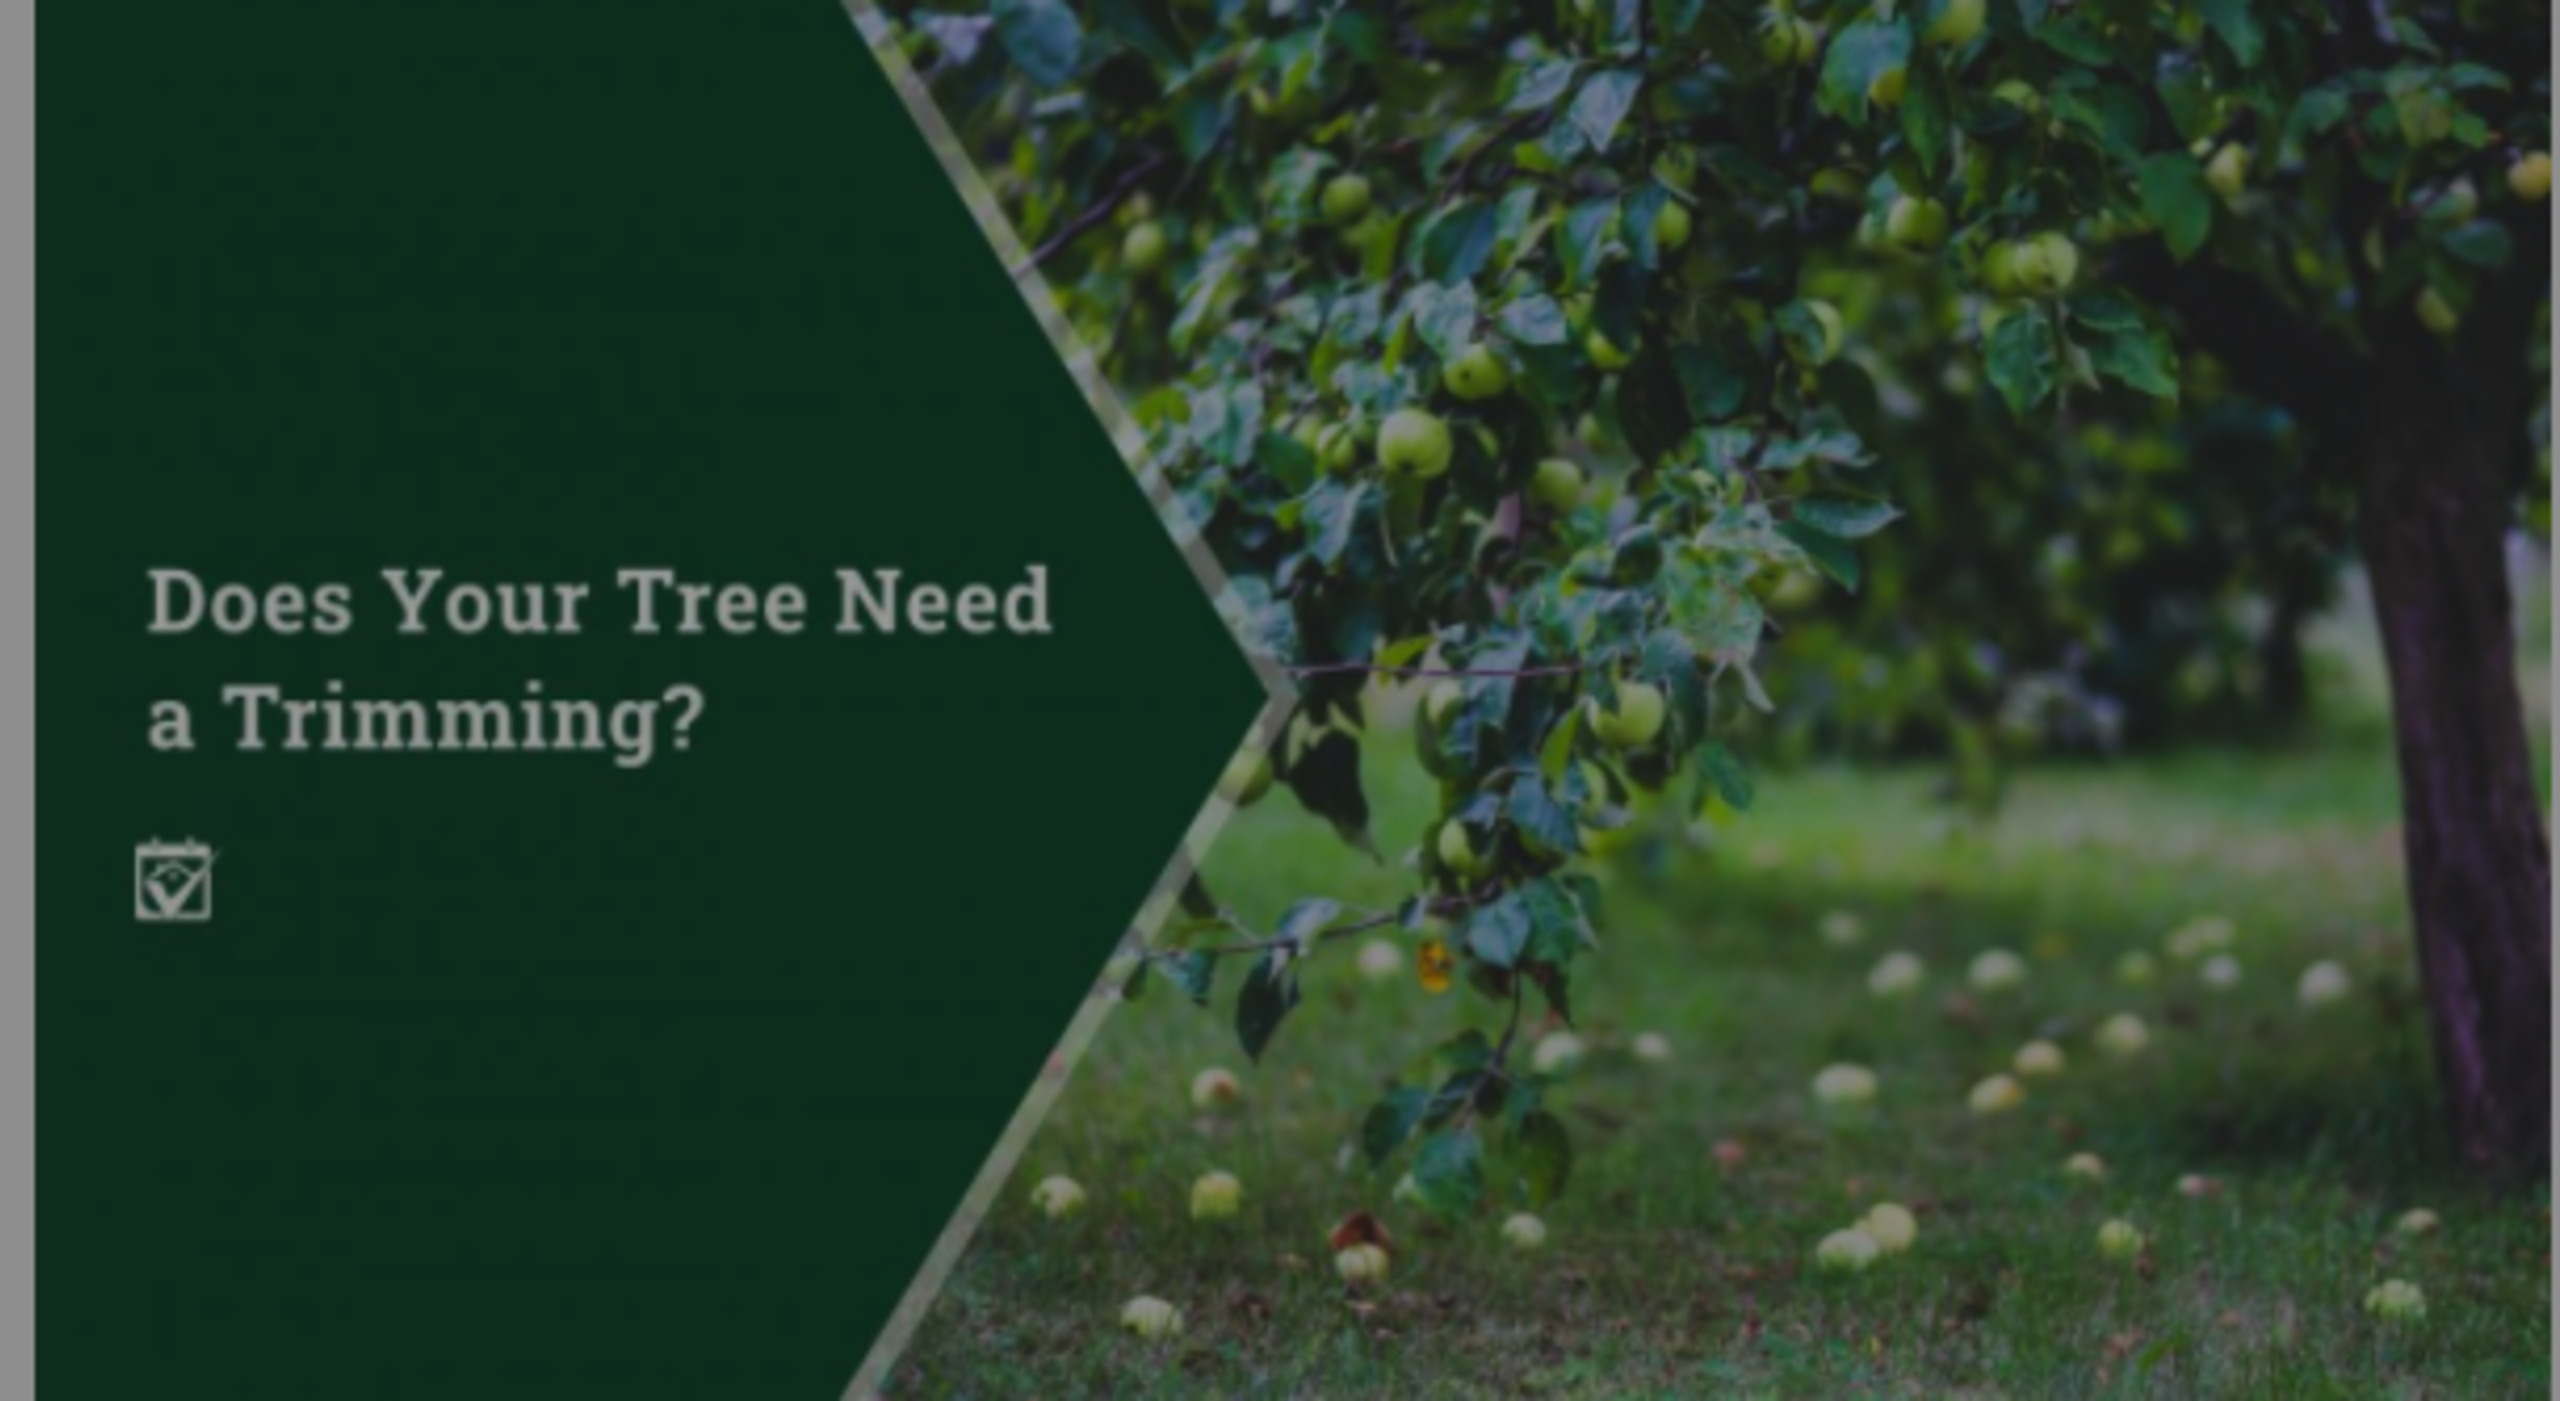 Does Your Tree Need a Trimming?